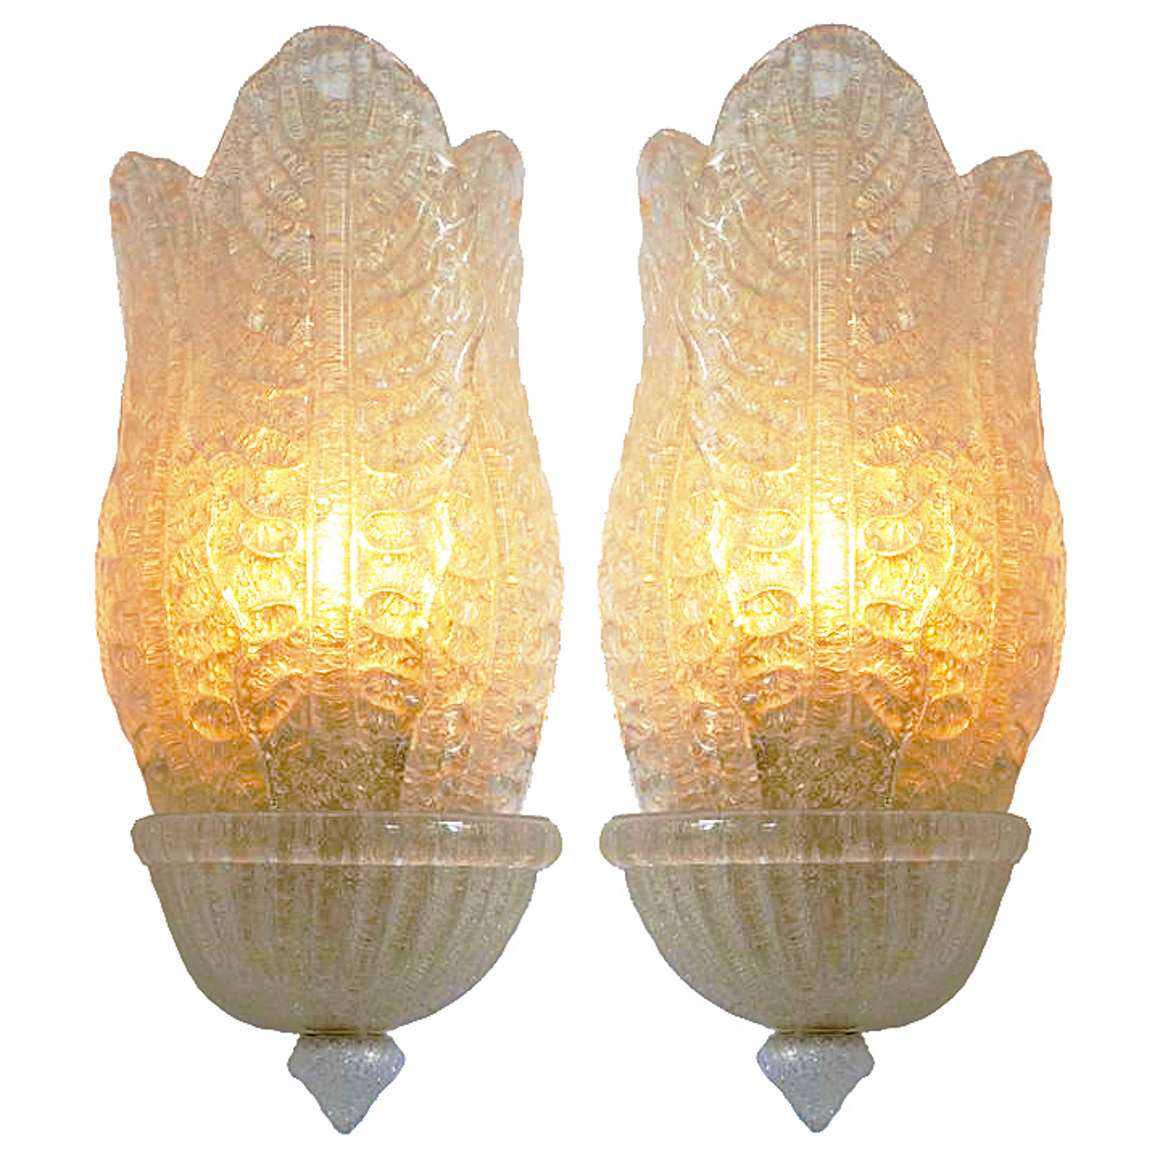 Barovier & Toso Gold Flakes Wall Lamps